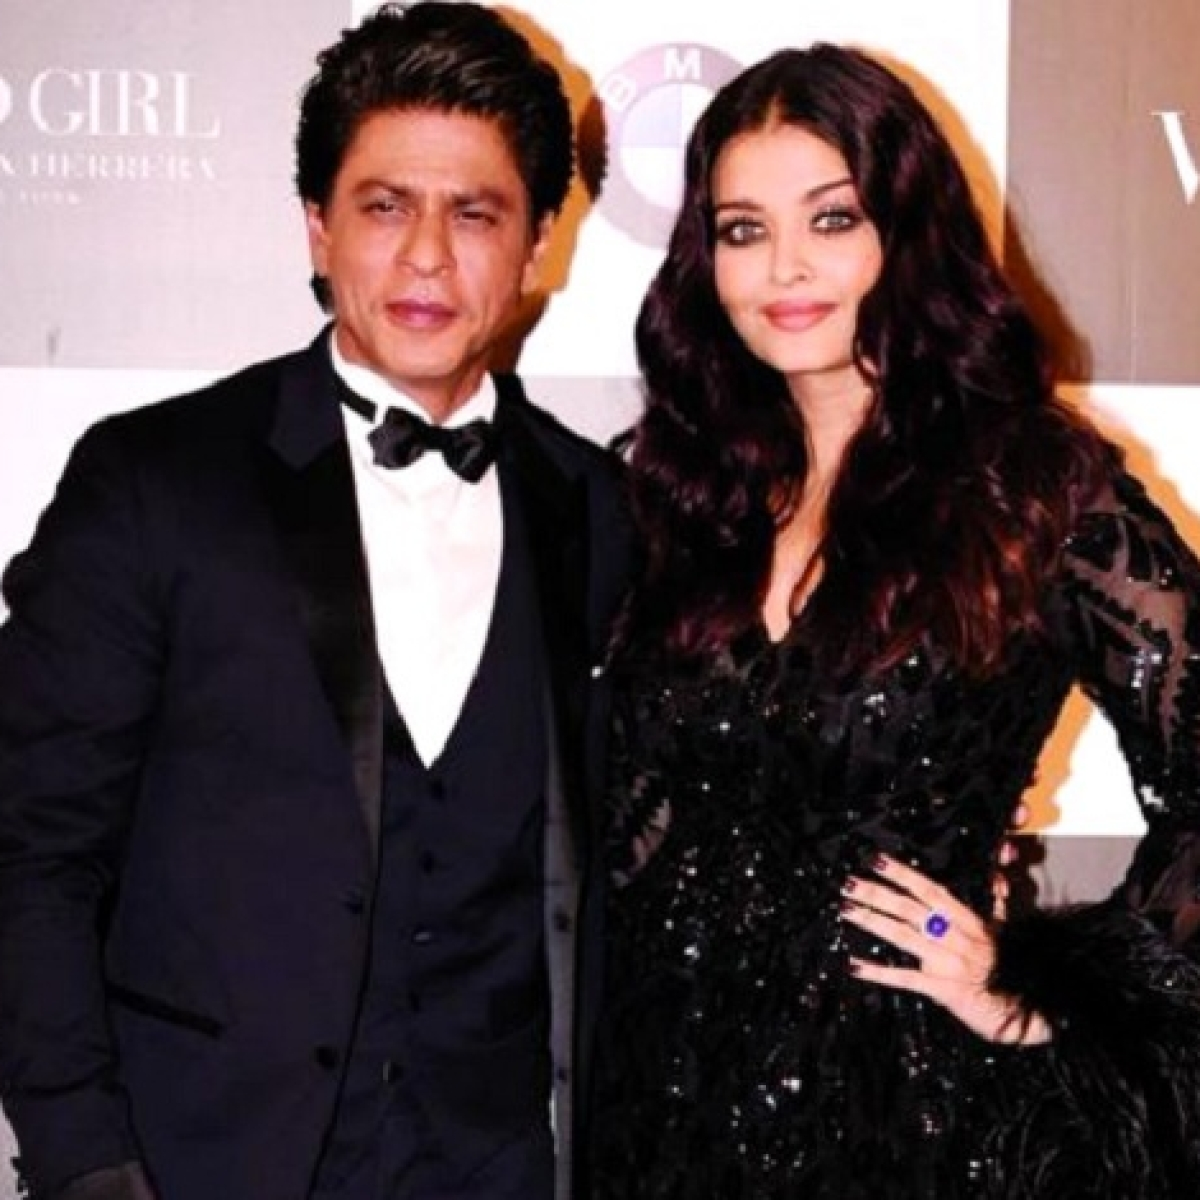 Aishwarya Rai Bachchan and Shah Rukh Khan: The forever star-crossed lovers...onscreen!